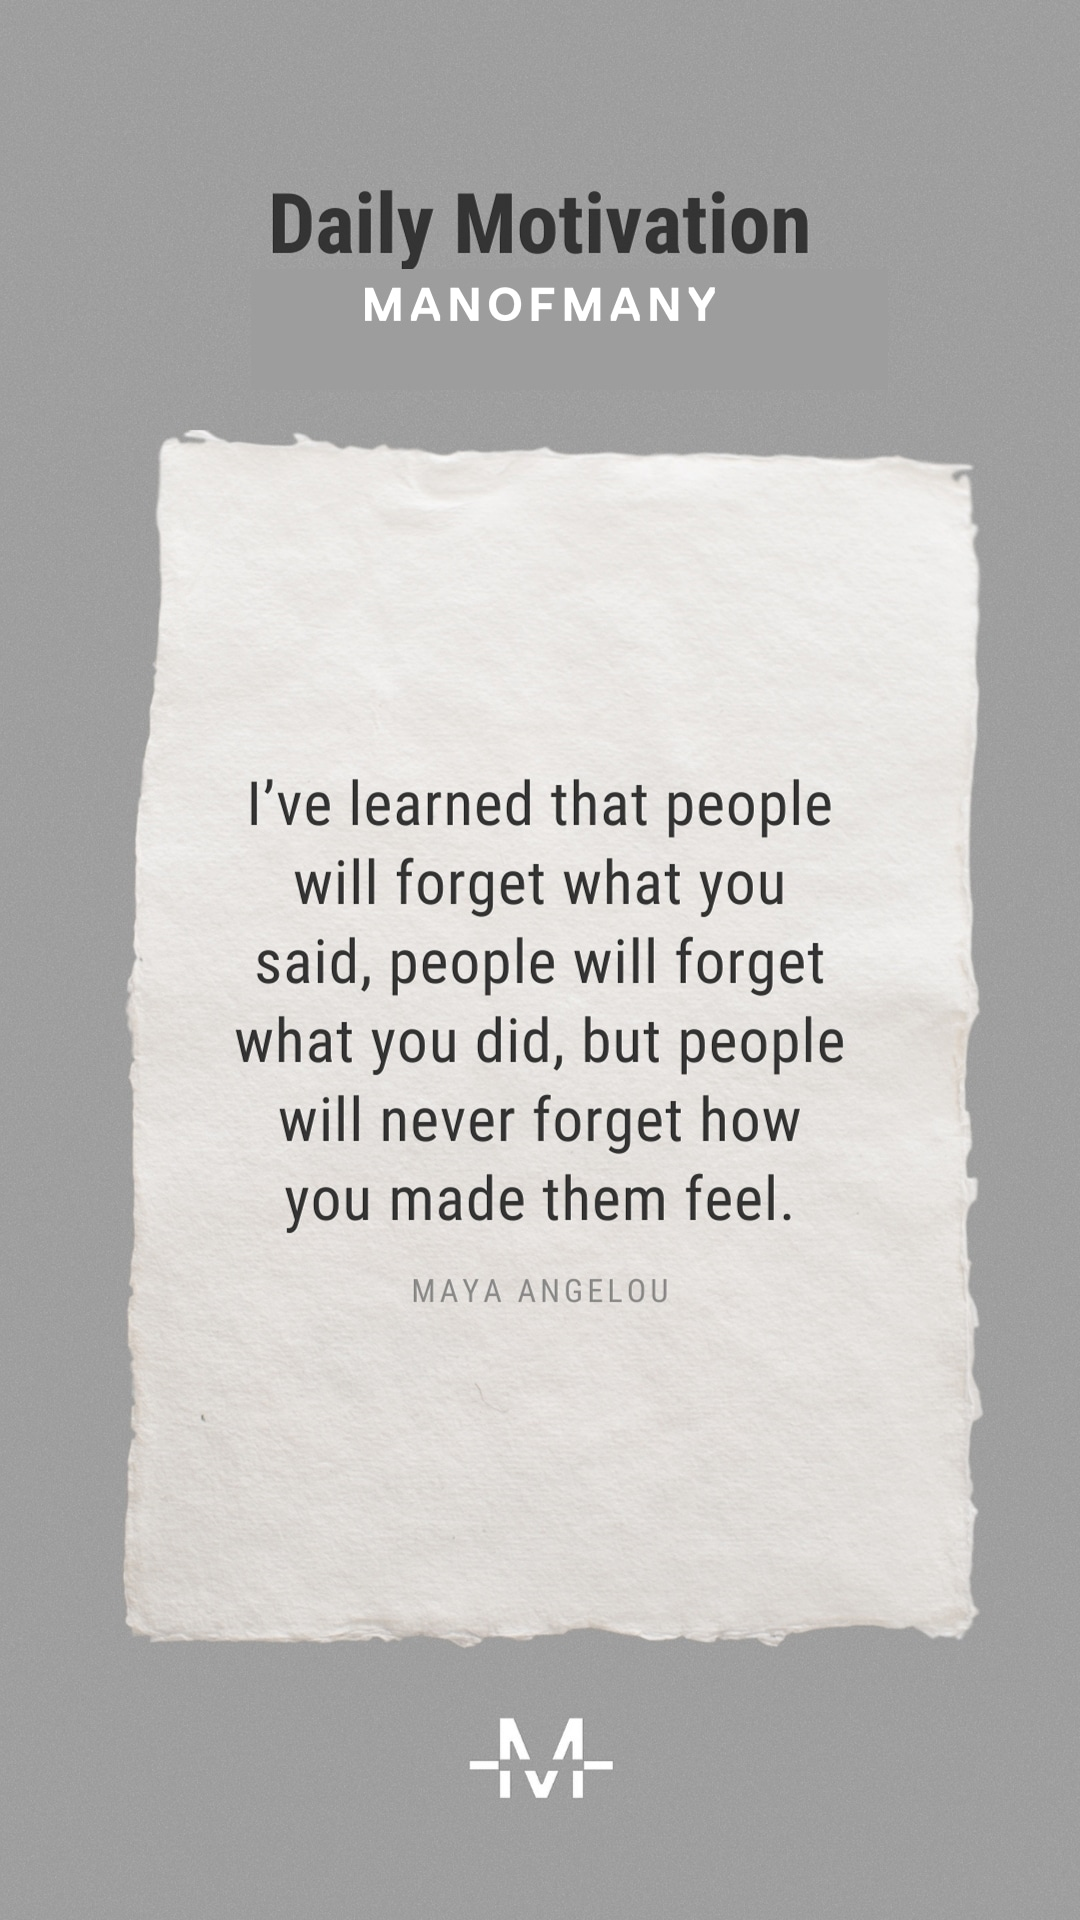 I've learned that people will forget what you said, people will forget what you did, but people will never forget how you made them feel. –Maya Angelou quote